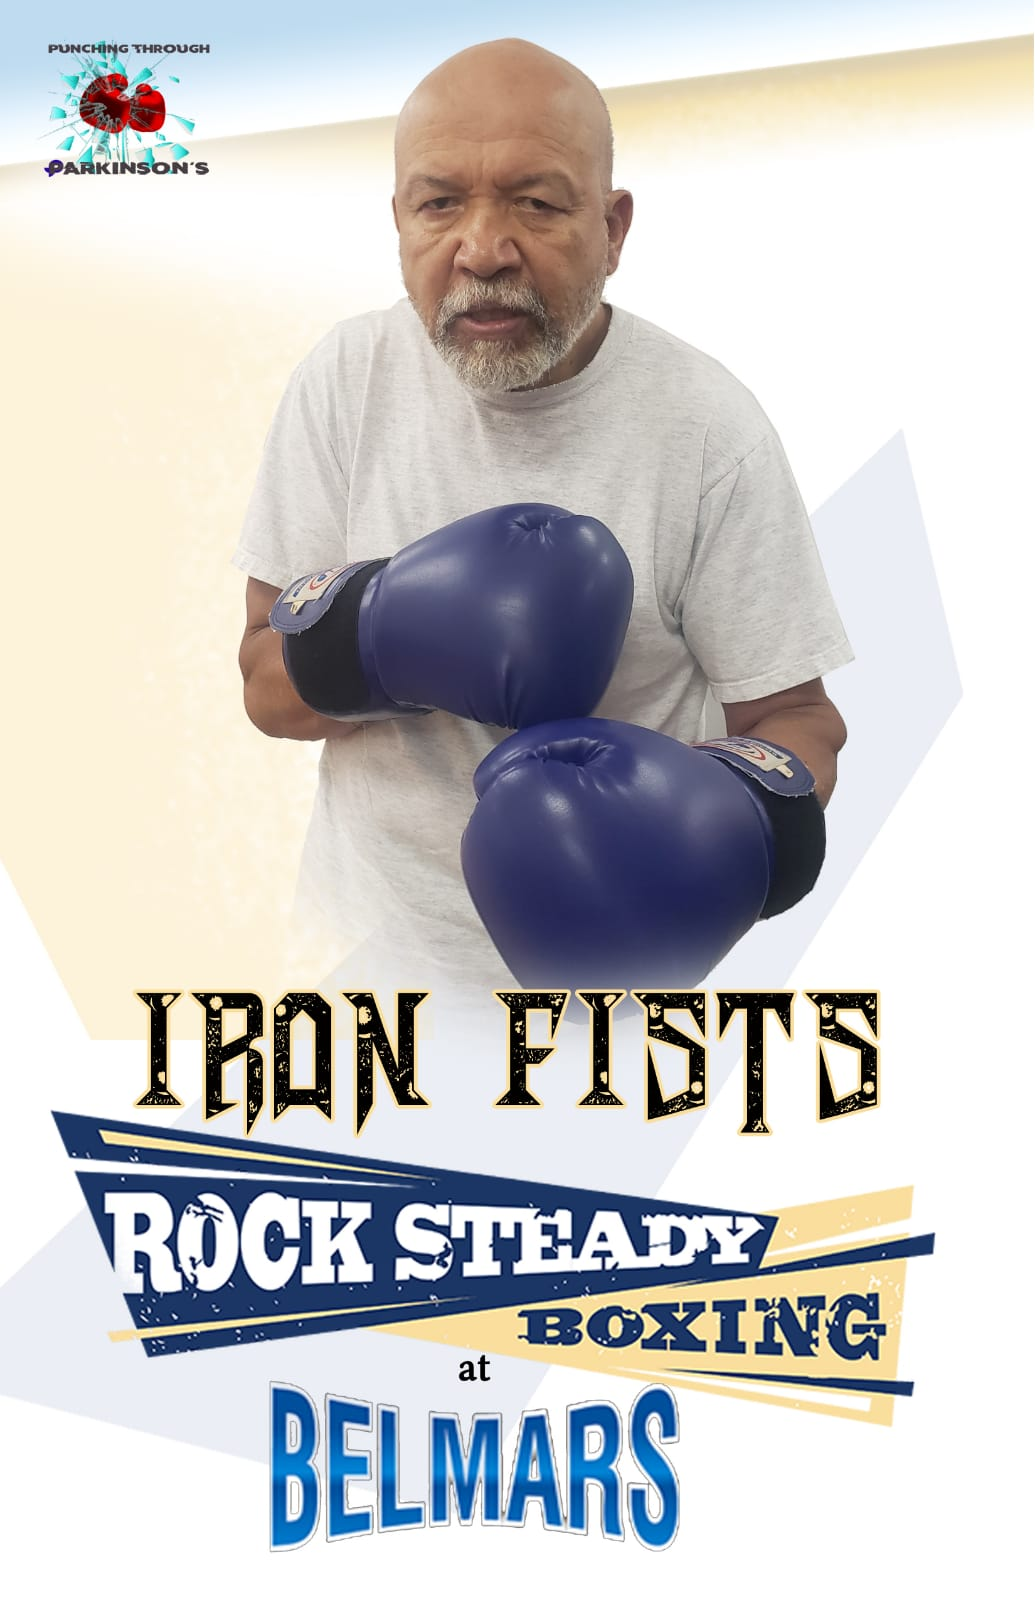 RSB Iron Fists